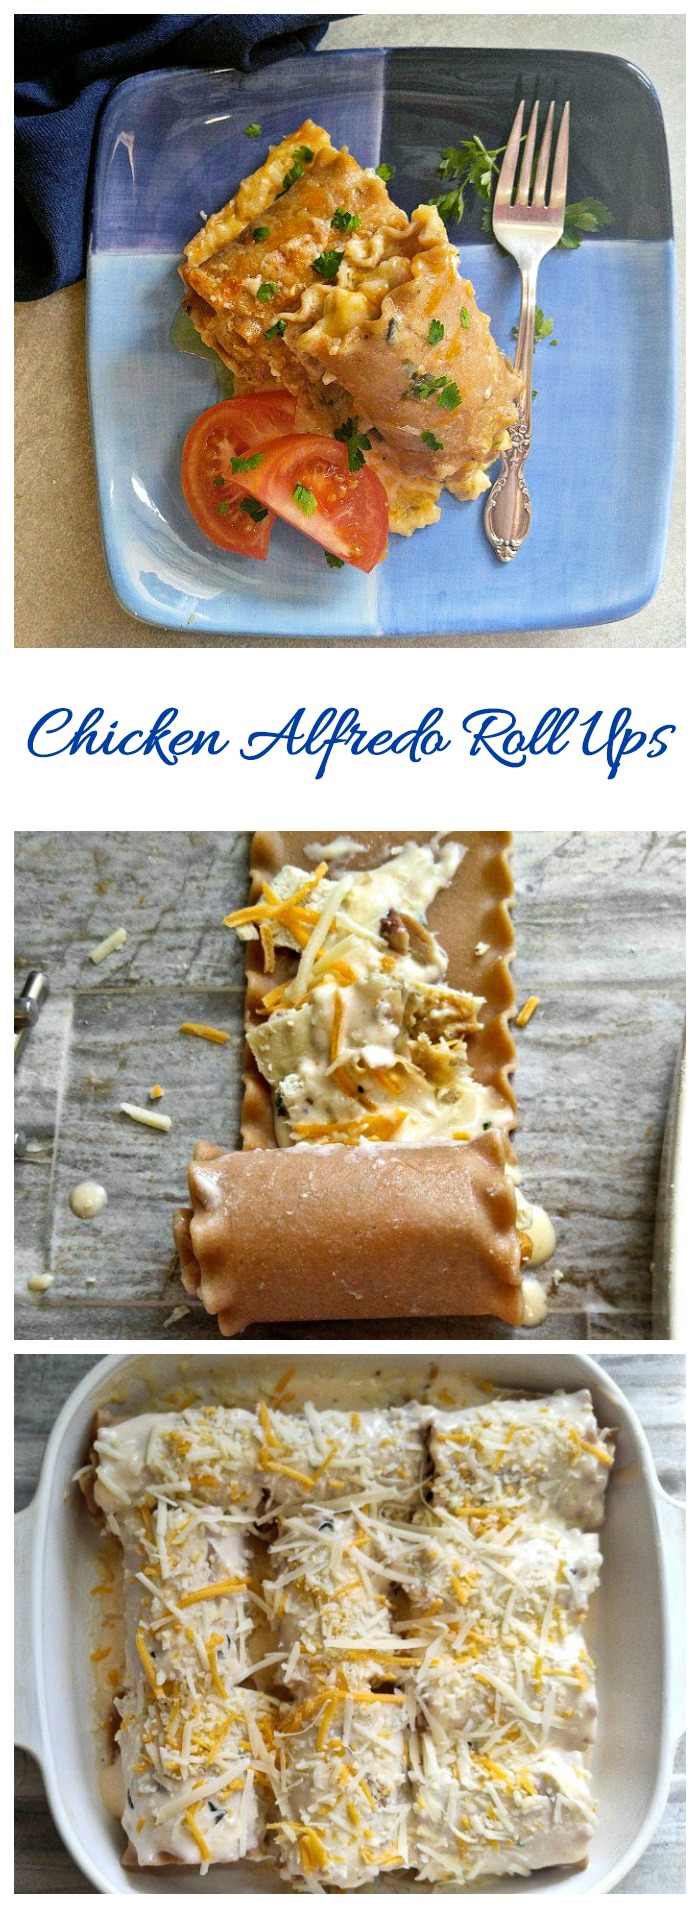 These chicken Alfredo Roll Ups have the flavor or both Lasagna and Alfredo sauce. They are easy to make and have been slimmed down to make them a bit more healthy. #lasagnarollups #pastarecipes